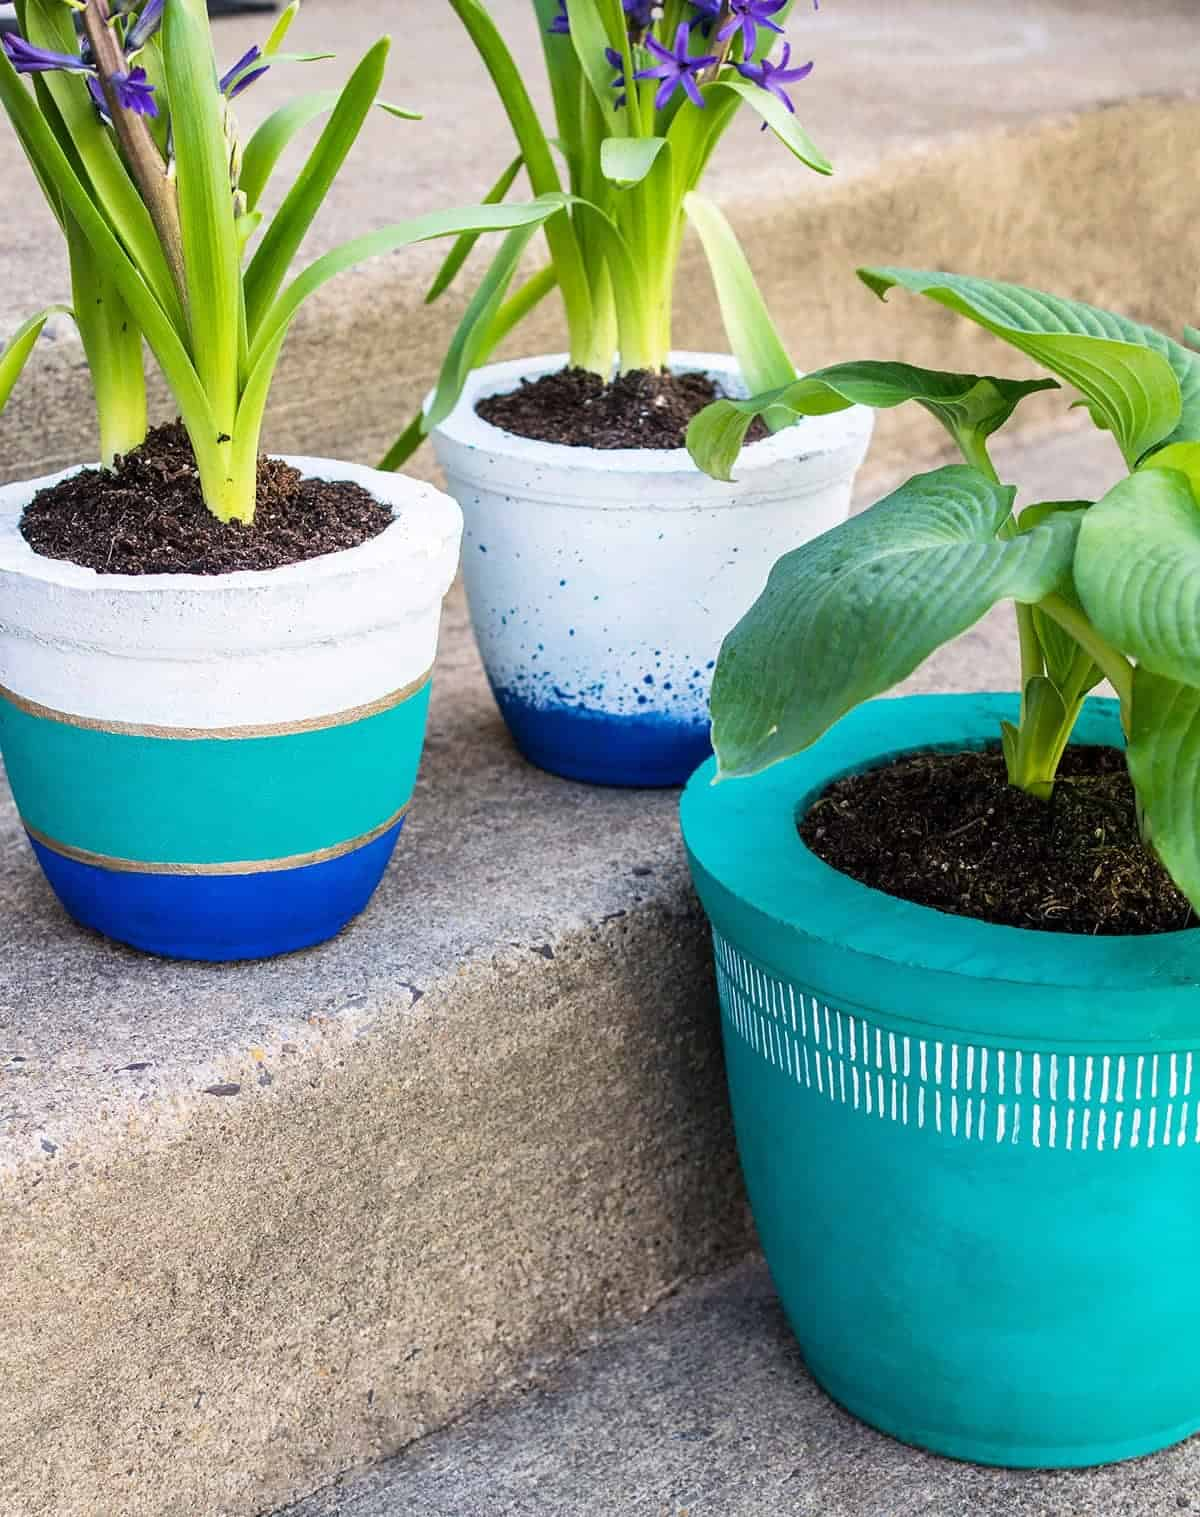 DIY painted concrete planters with potted plants on steps.